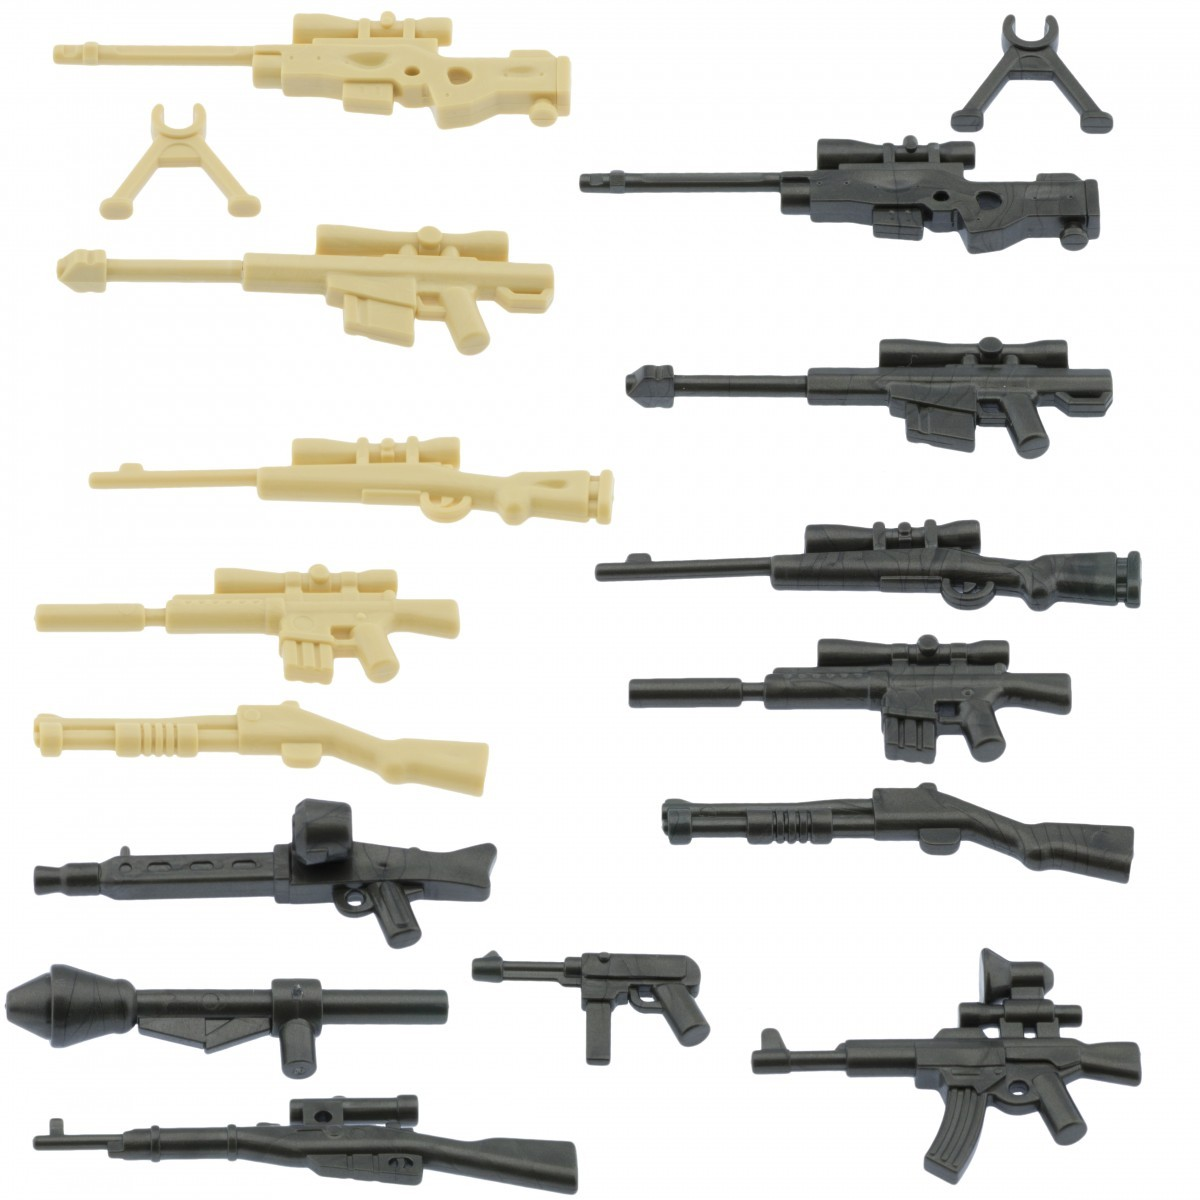 My military guns weapons pack for lego minifigures minifig accessories a silver b tan and silver